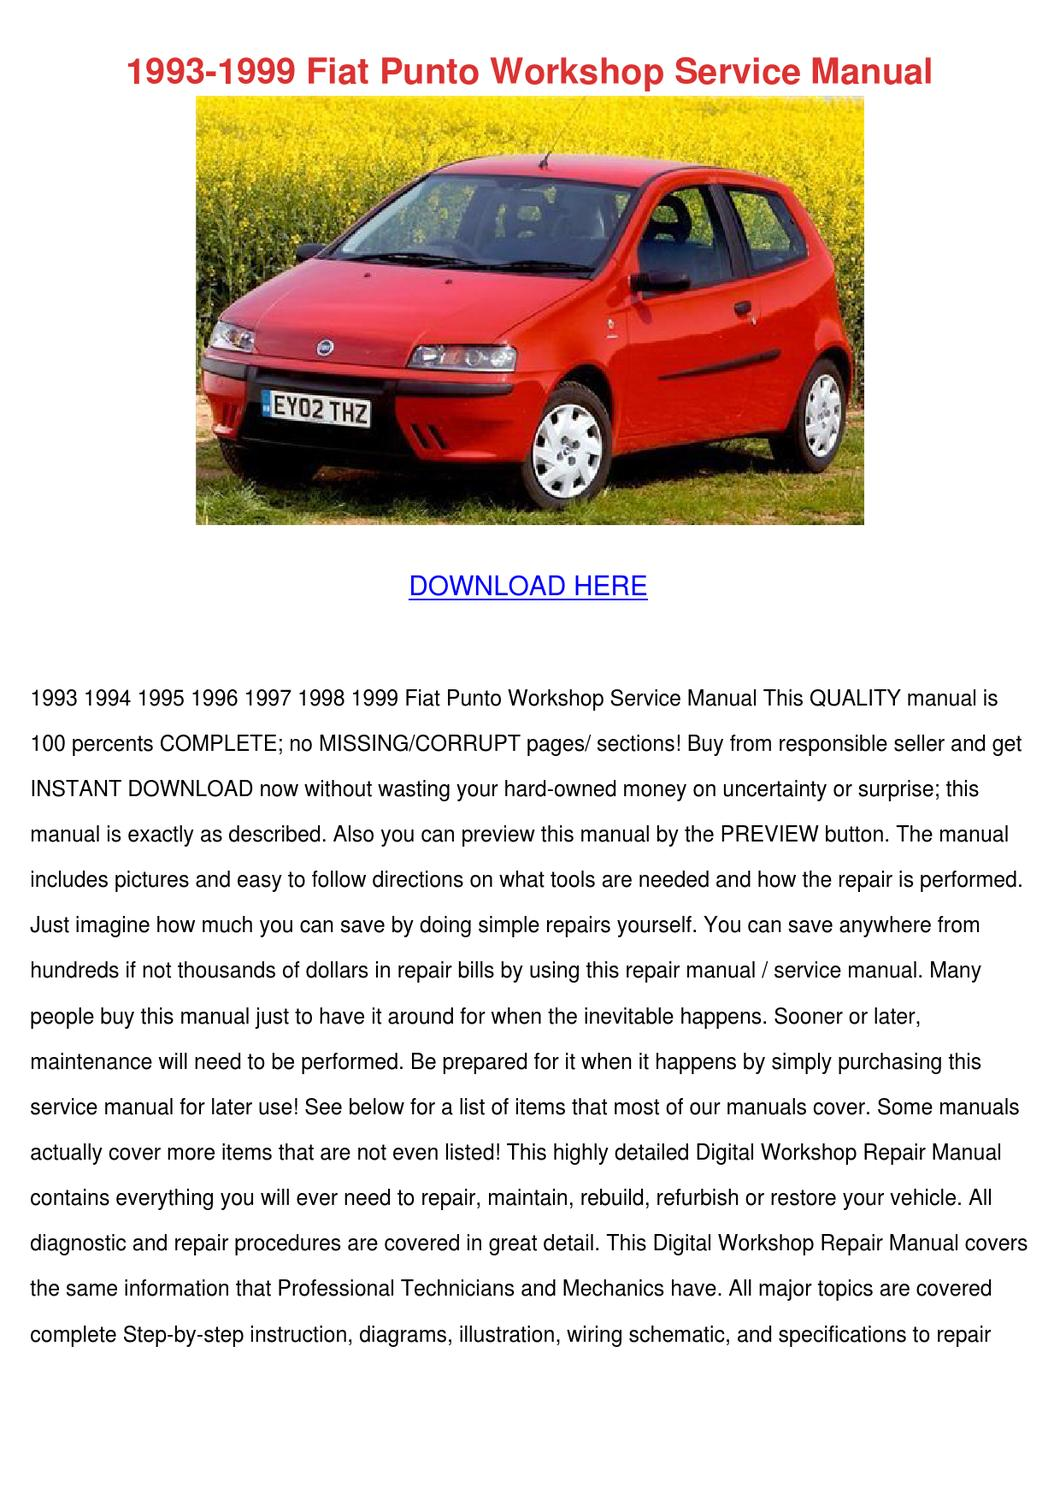 1993 1999 Fiat Punto Workshop Service Manual By Josefina Hotalen Issuu Coupe 20v Wiring Diagram